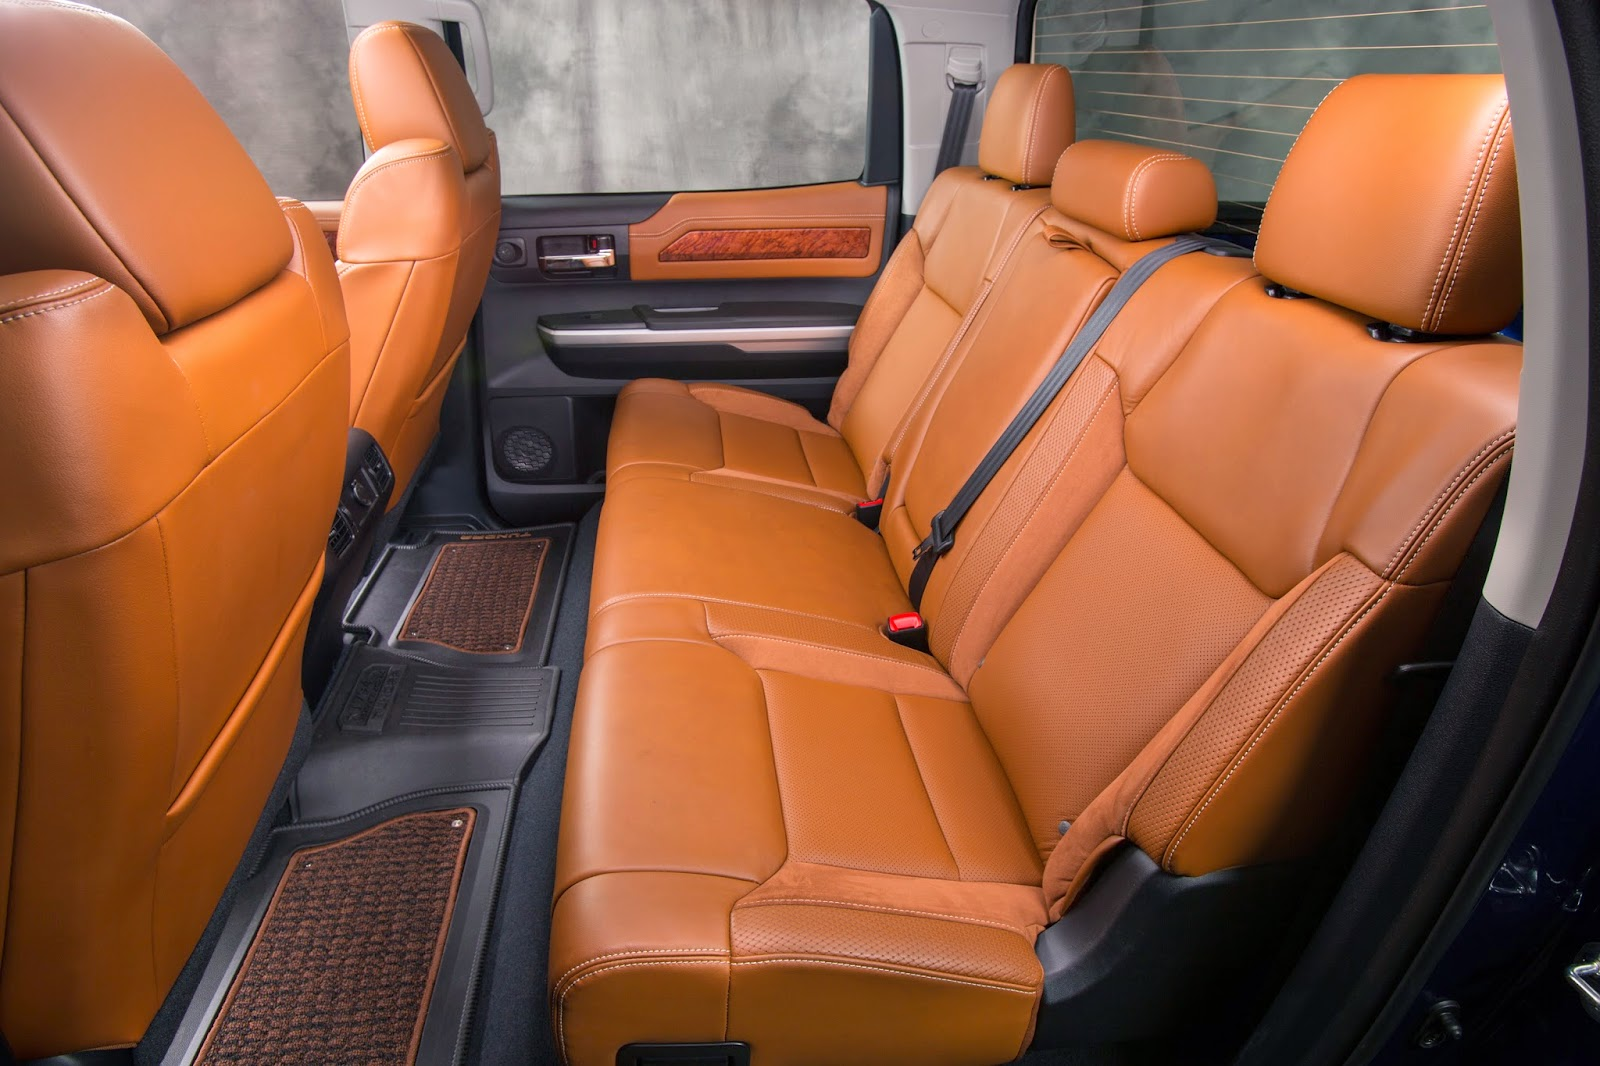 Rear seat of 2014 Toyota Tundra 1794 Edition